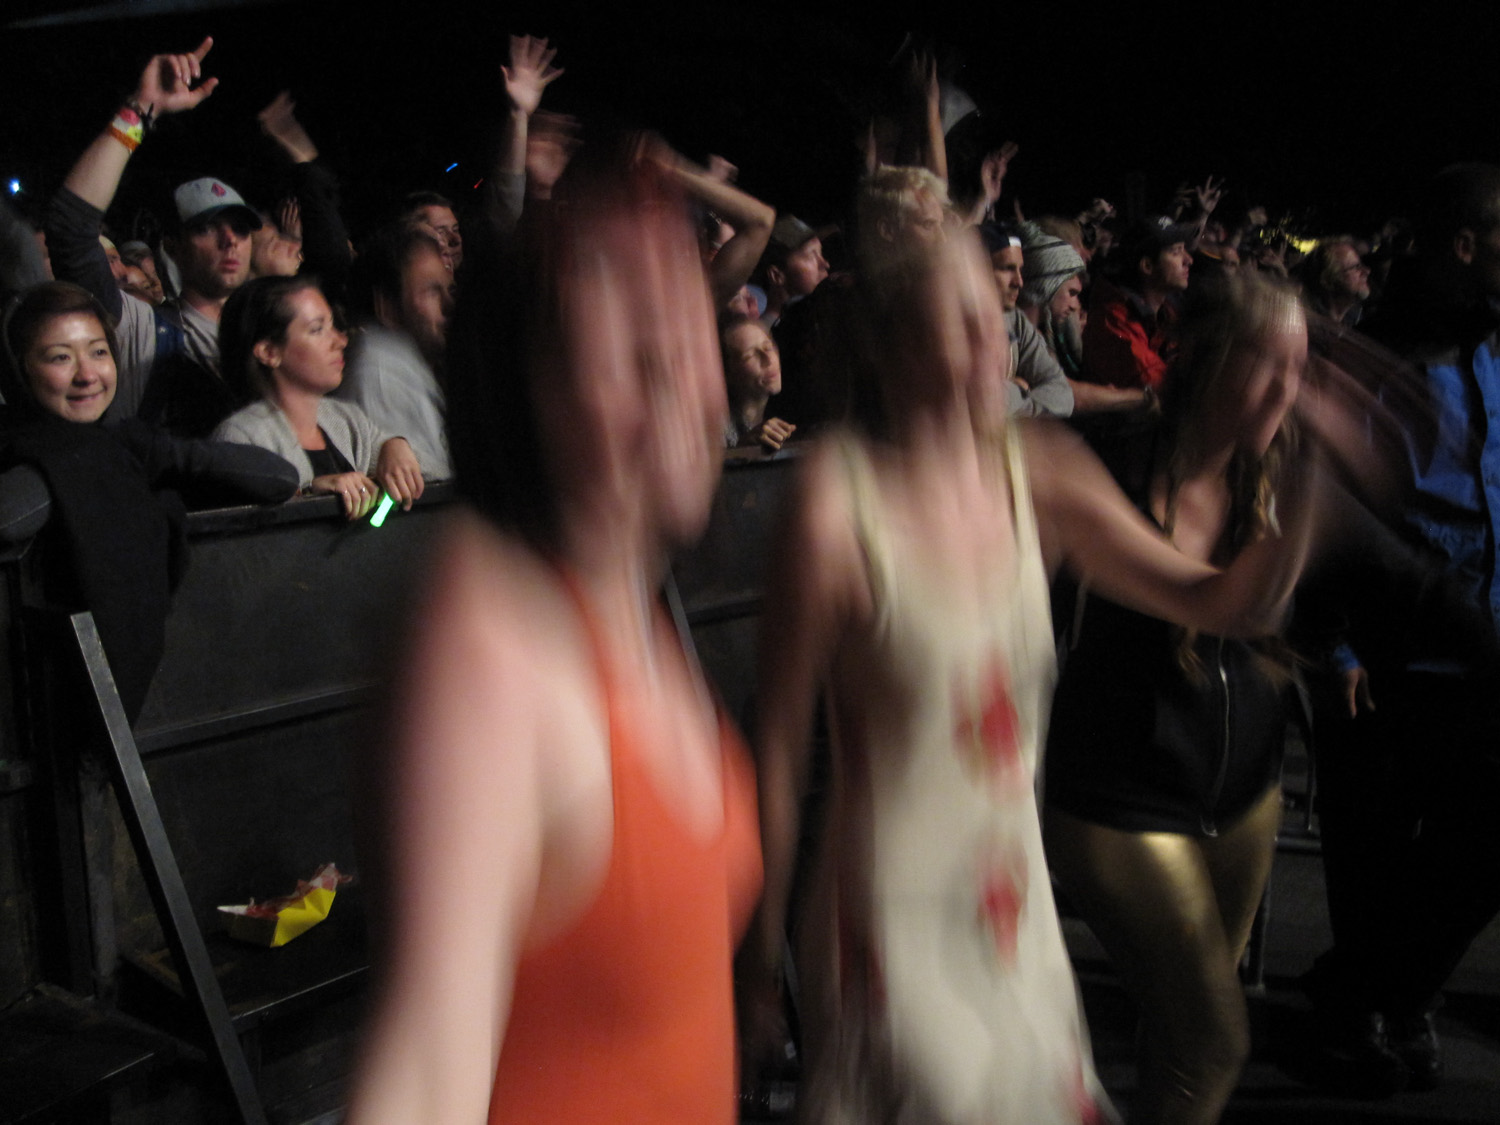 Me and a friend dancing at Mumford & Sons at Sasquatch!